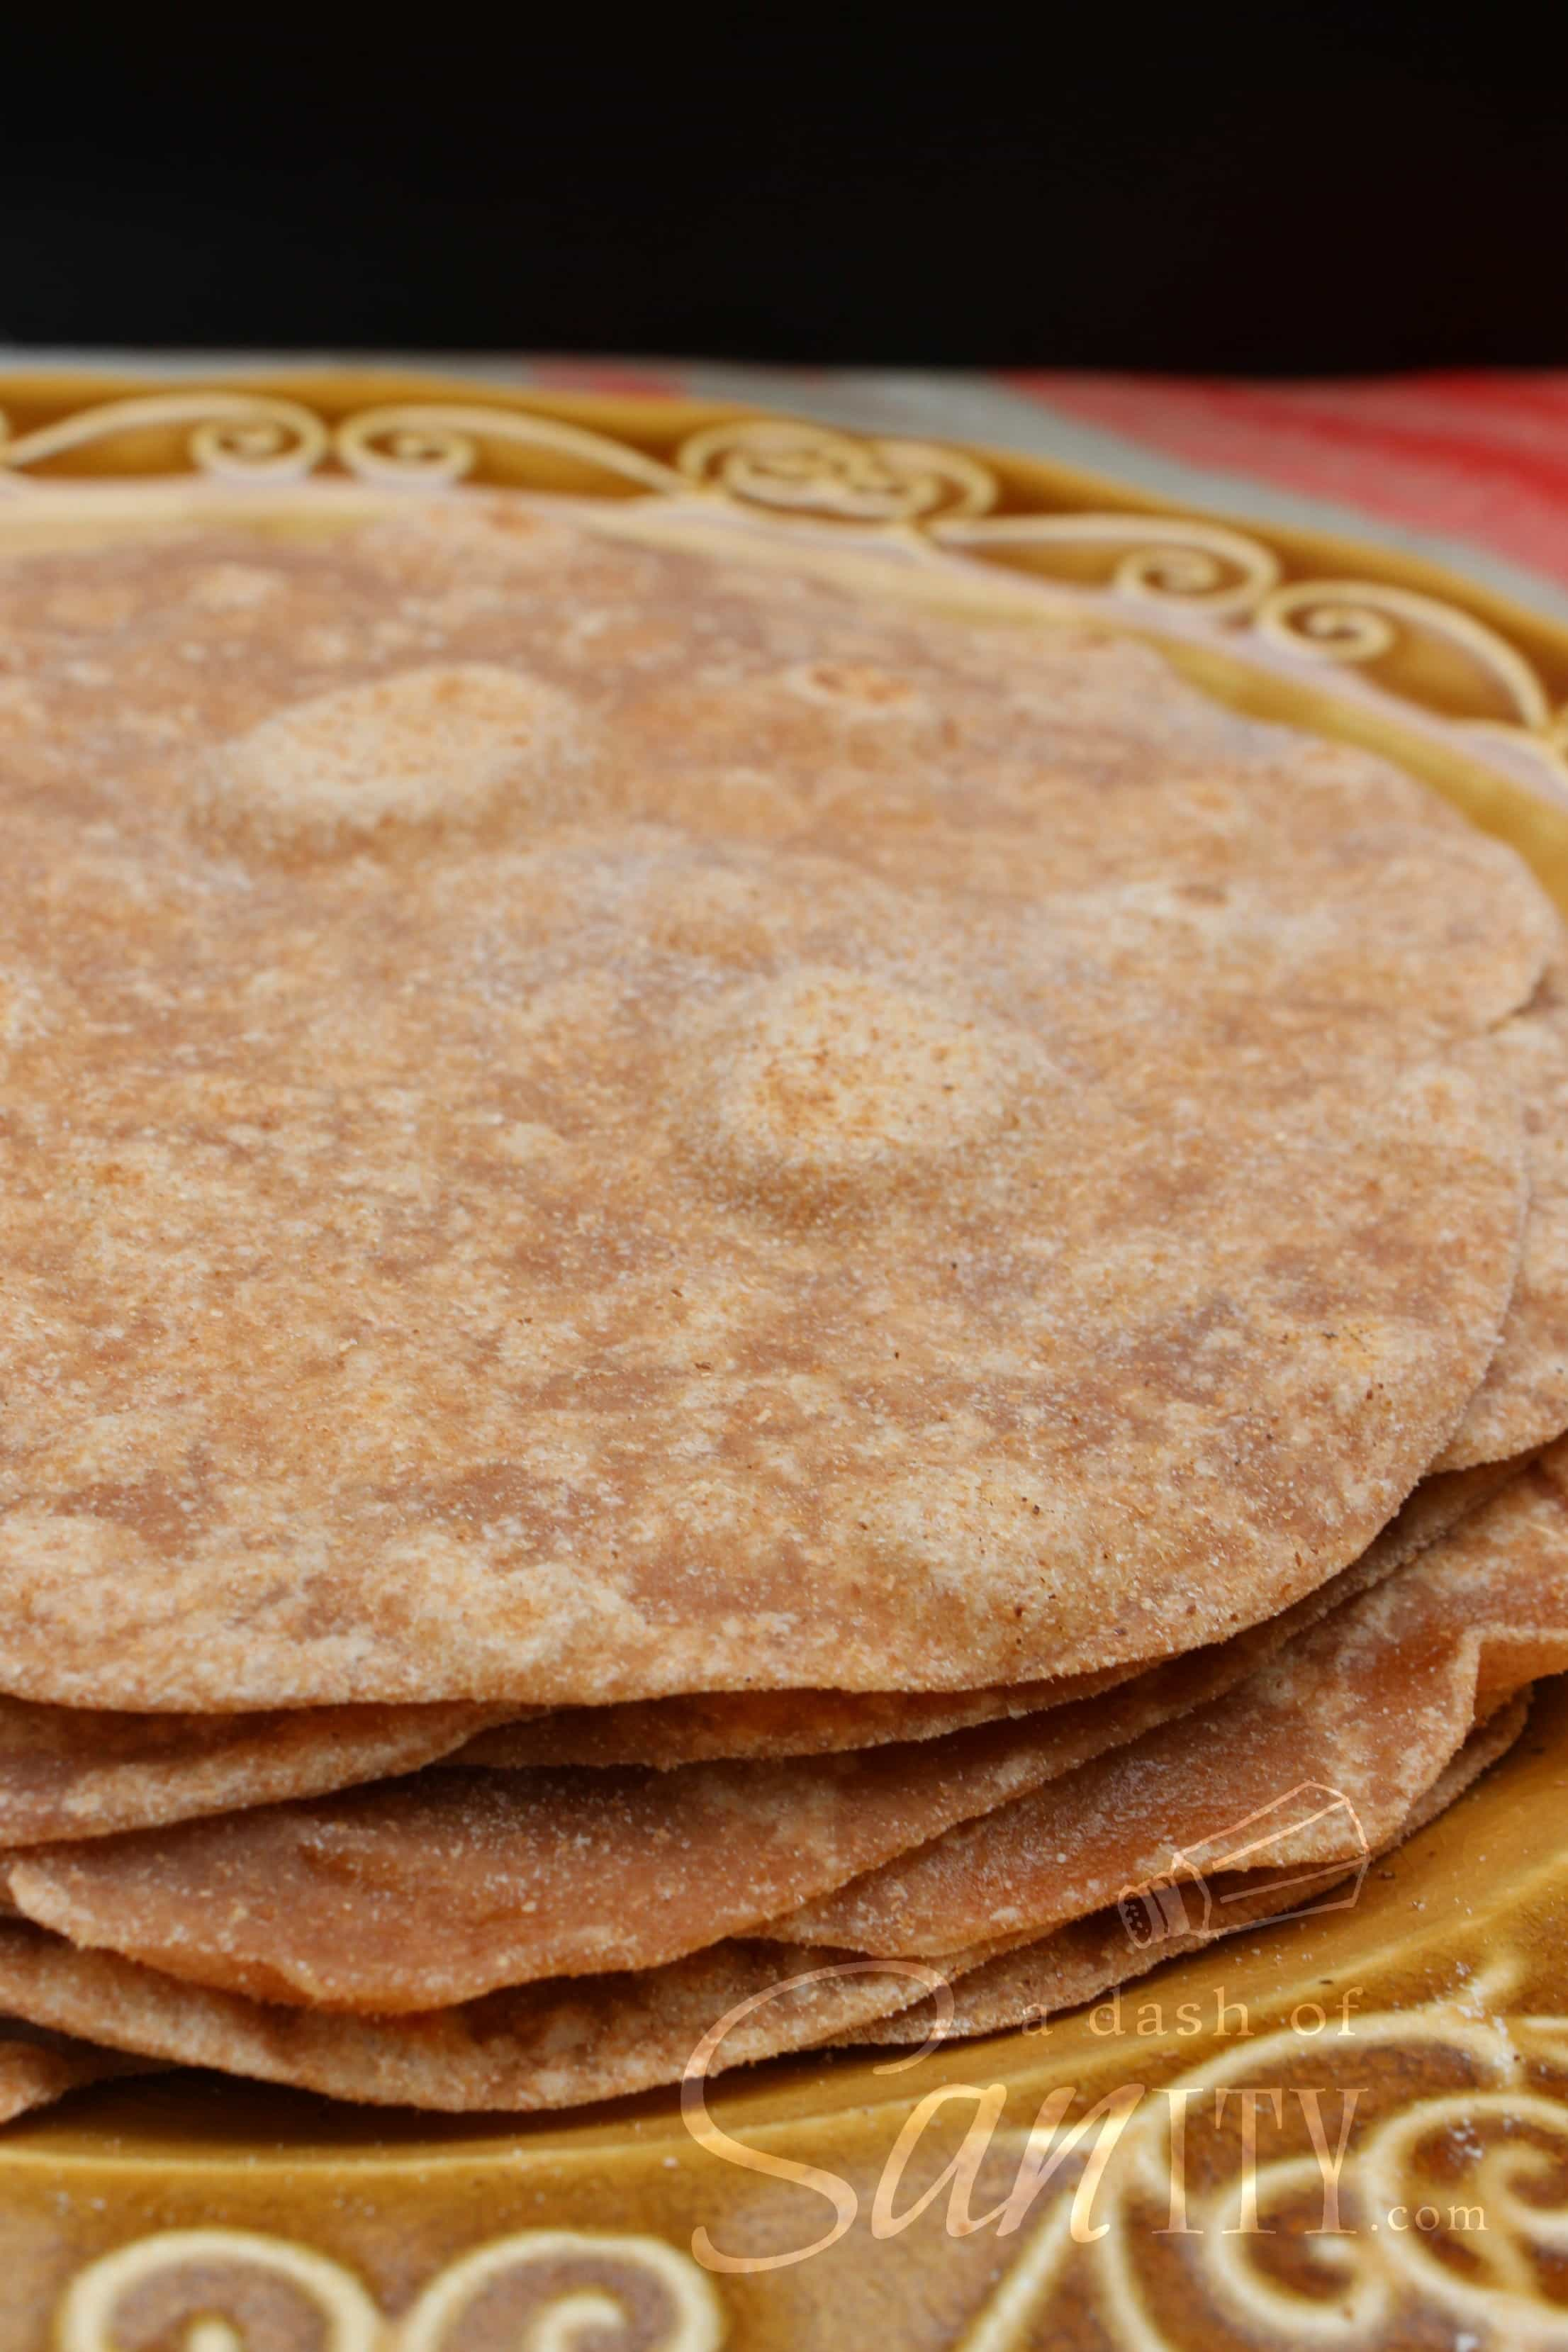 These Whole Wheat Tortillas are the best I've tried. Perfect for wraps, quesadillas, burritos, or as a side for your favorite tortilla soup.